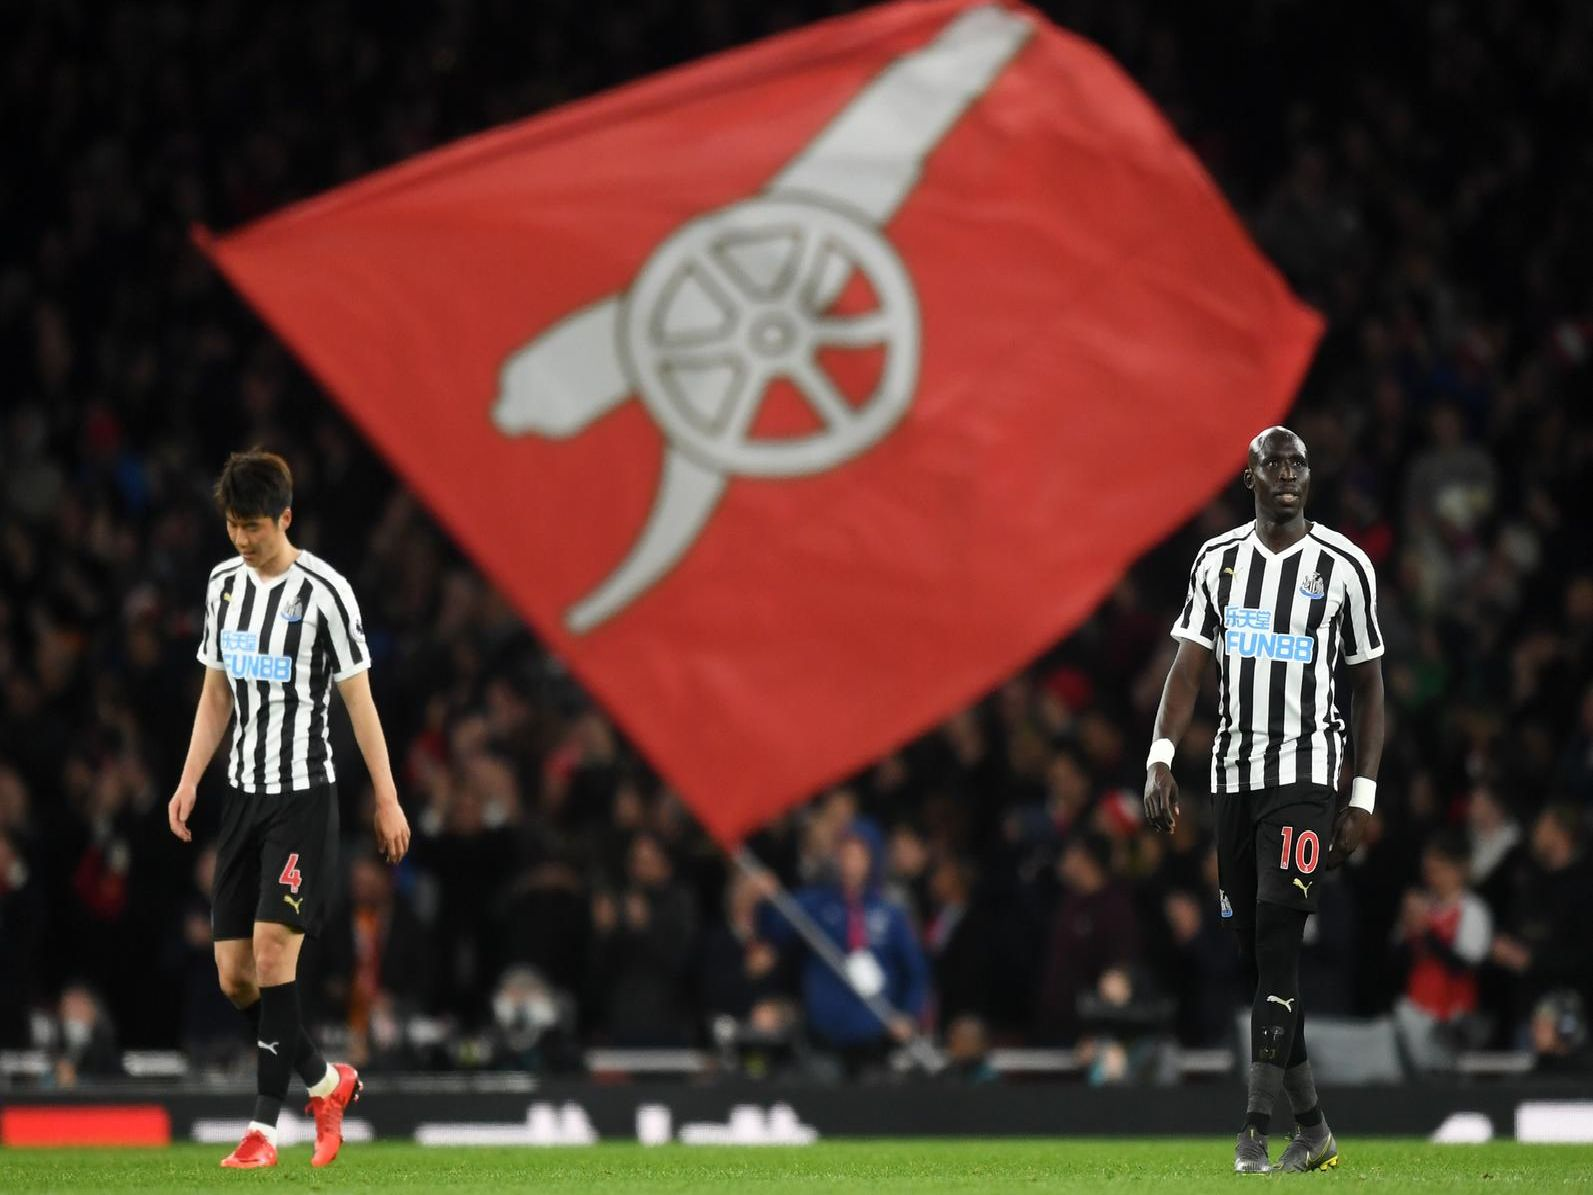 Our Newcastle United writer Miles Starforth has dished out his player ratings following the game at the Emirates - scroll down to see how each player performed: